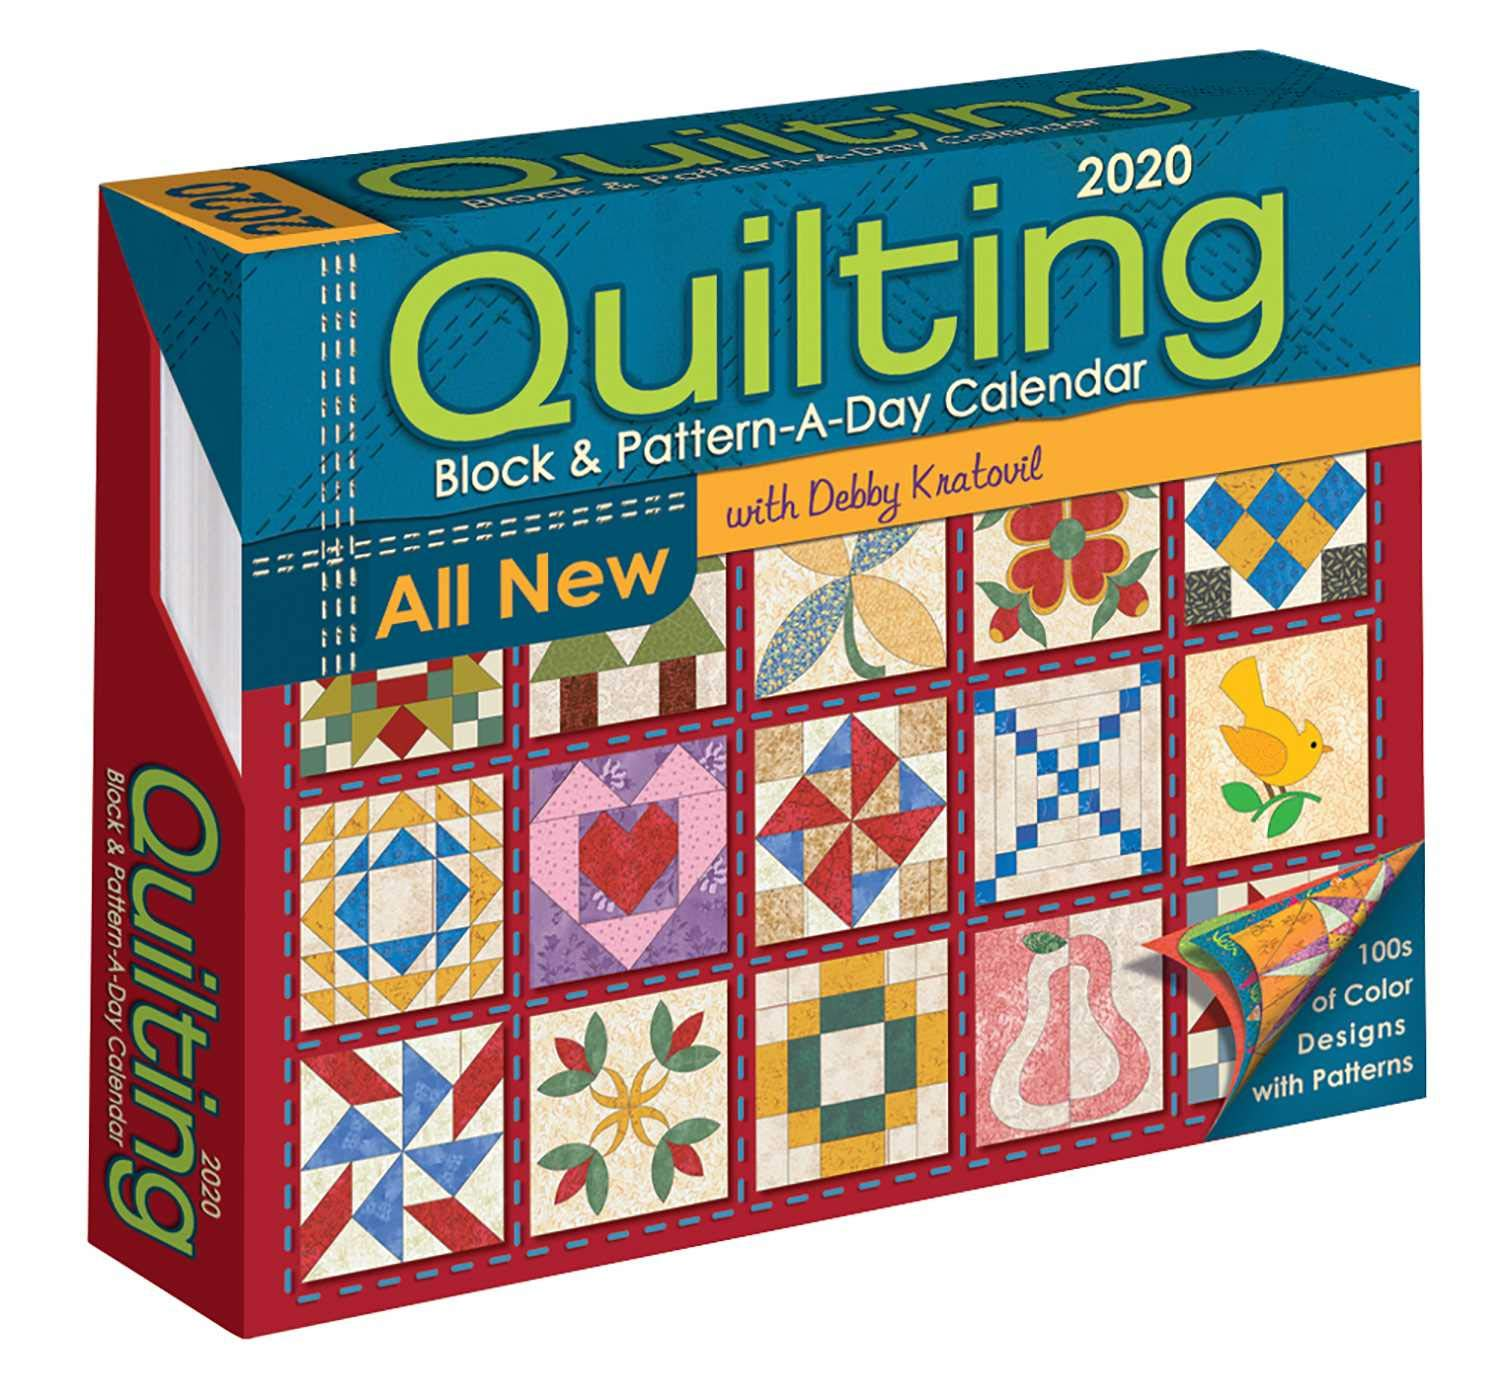 Quilting Block and Pattern-a-Day 2020 Activity Calendar